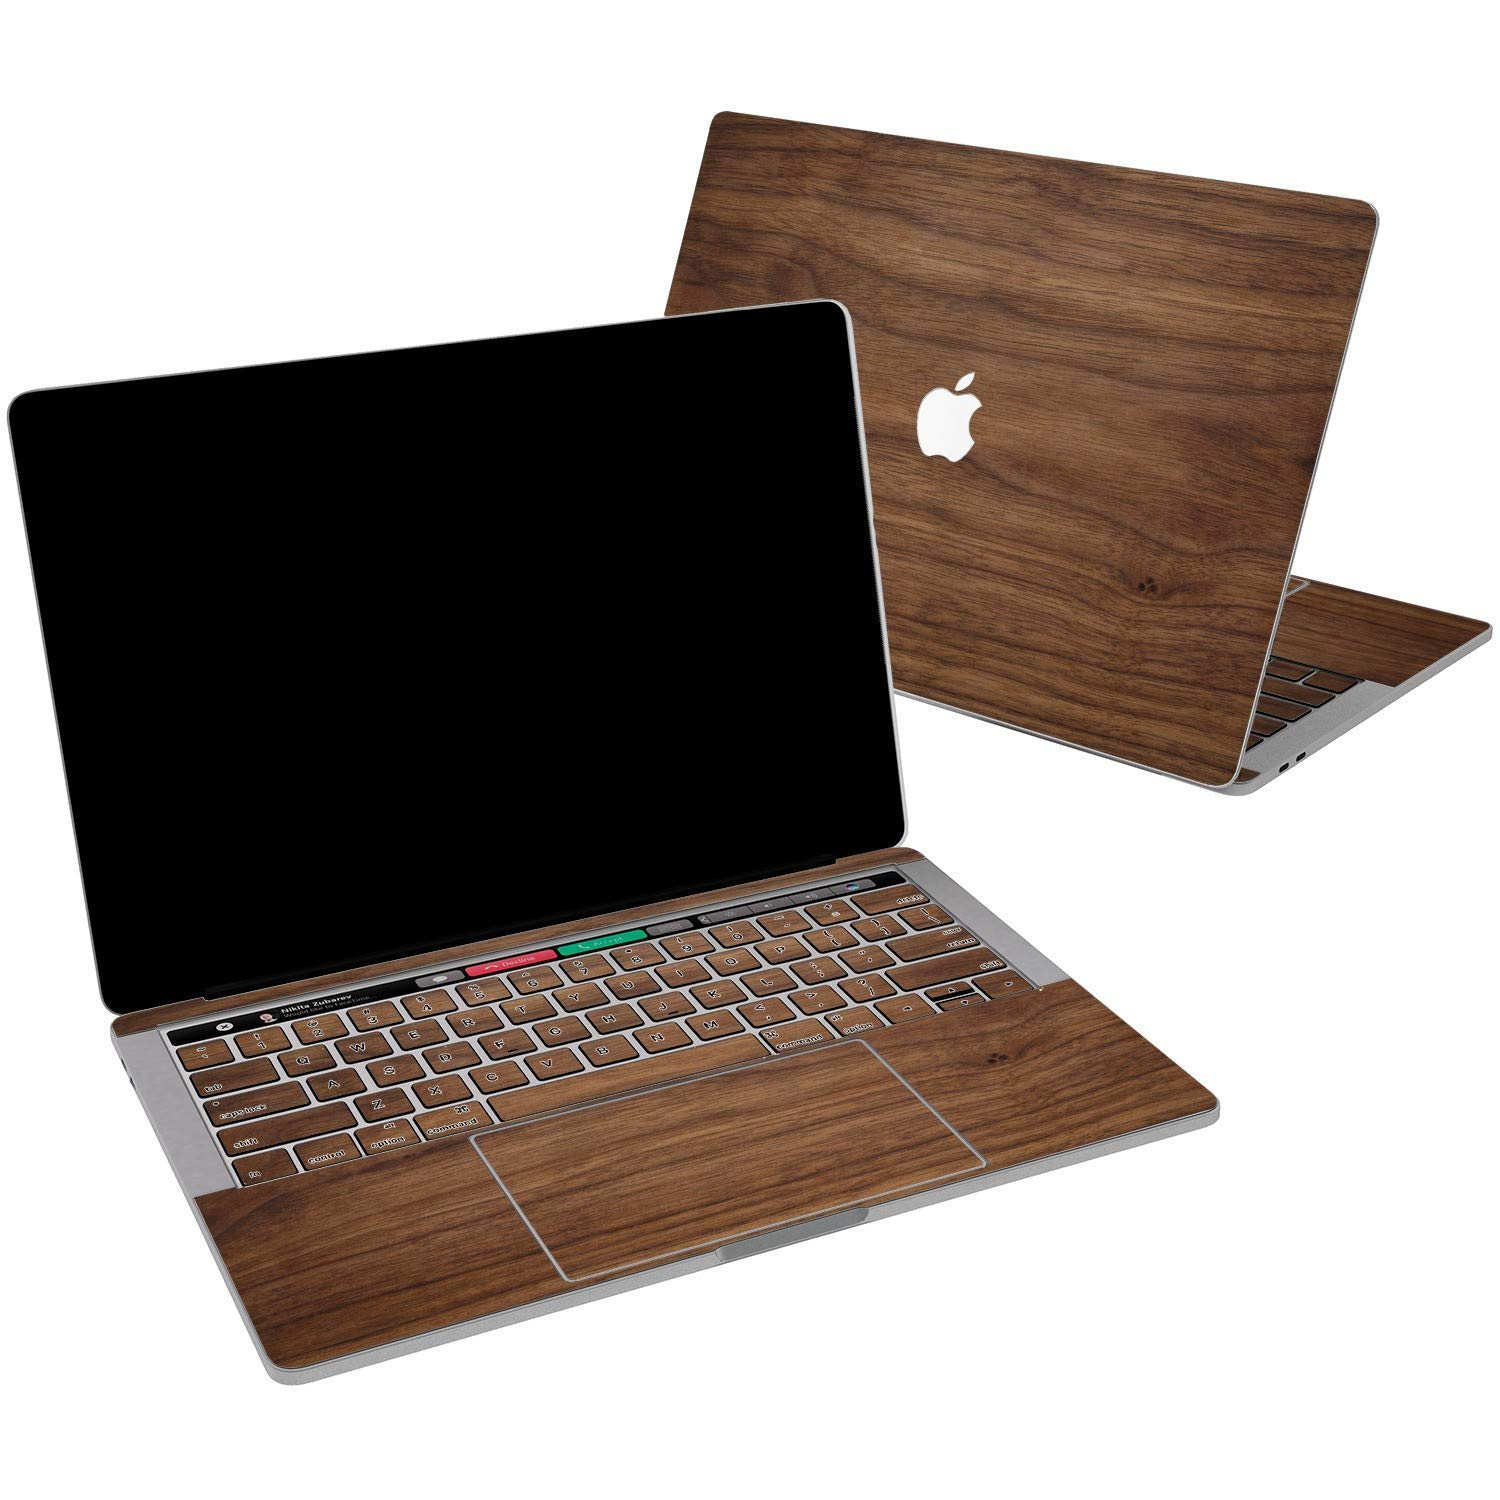 Lex Altern Vinyl Skin for MacBook Air 13 inch Mac Pro 15 Retina 12 11 2019 2018 2017 2016 2015 Walnut Pattern Wood Real Natural Elegant Men Print Girl Touch Bar Cover Keyboard Decal Sticker Top